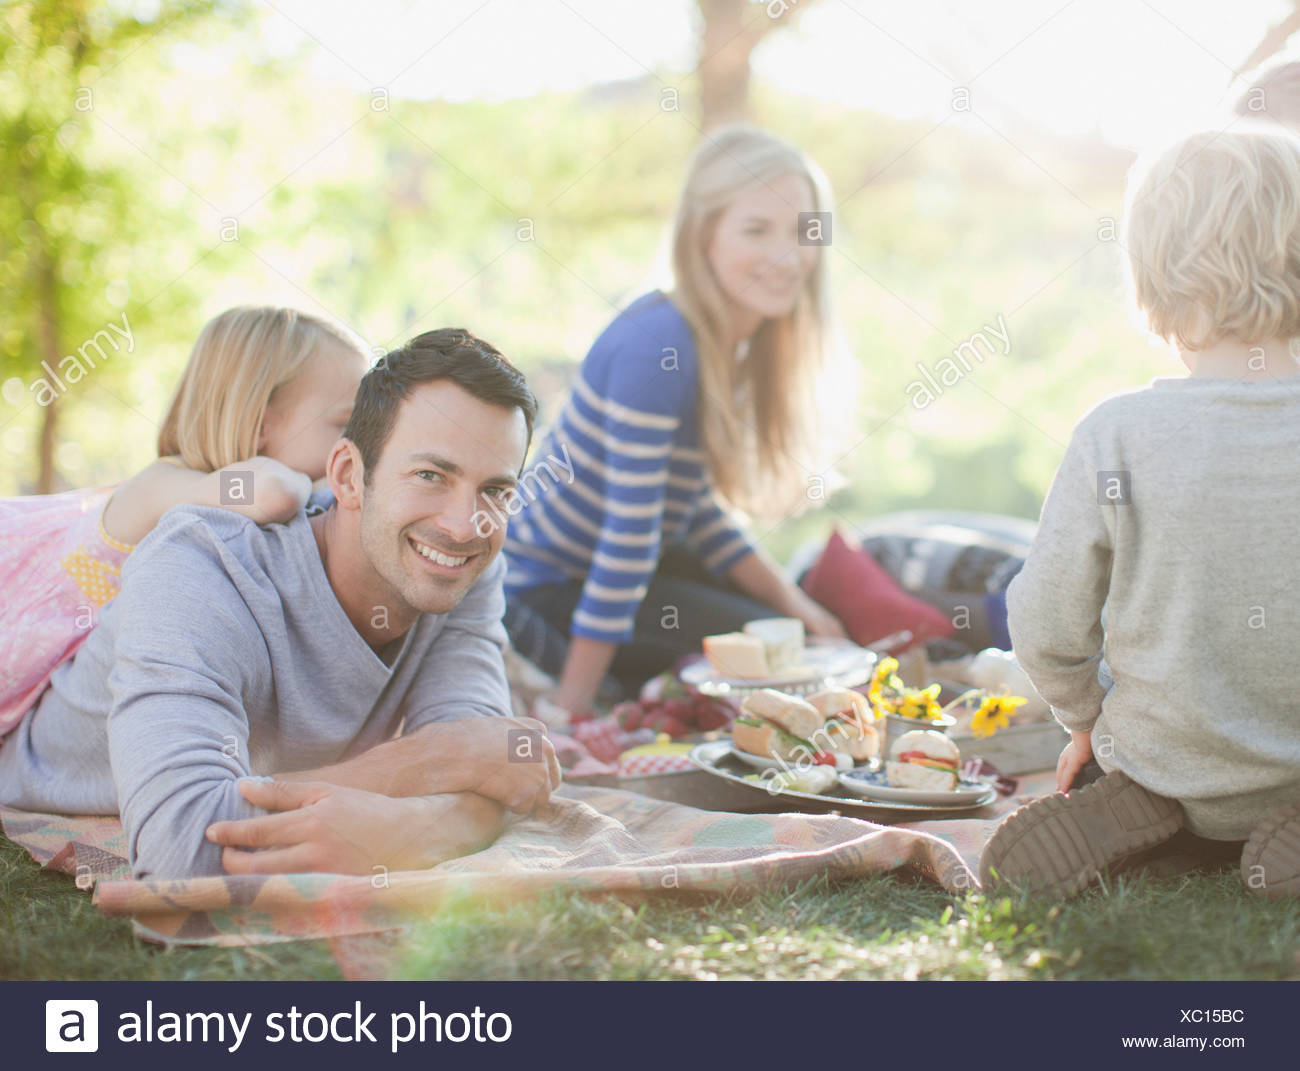 Family picnicking together on grass - Stock Image